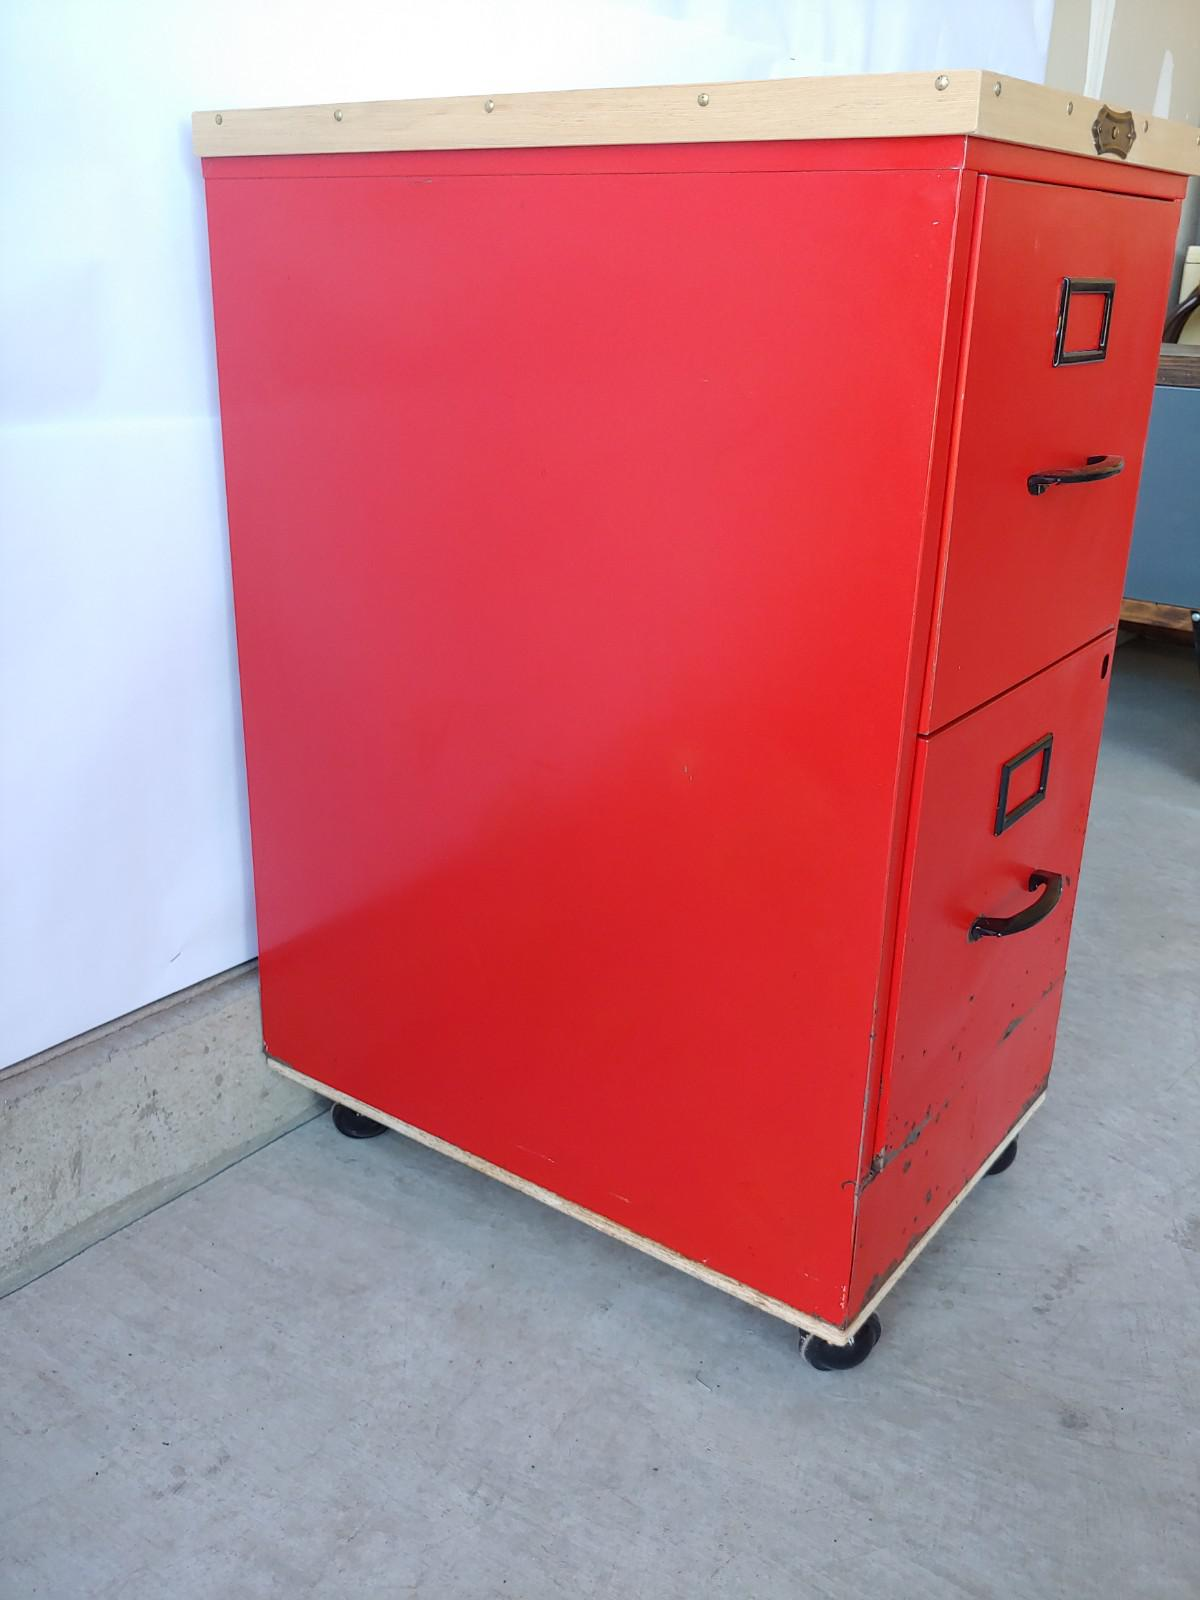 Charmant Vintage Super Roller Metal 2 Drawer Rolling Red File Cabinet   Image 5 Of 13